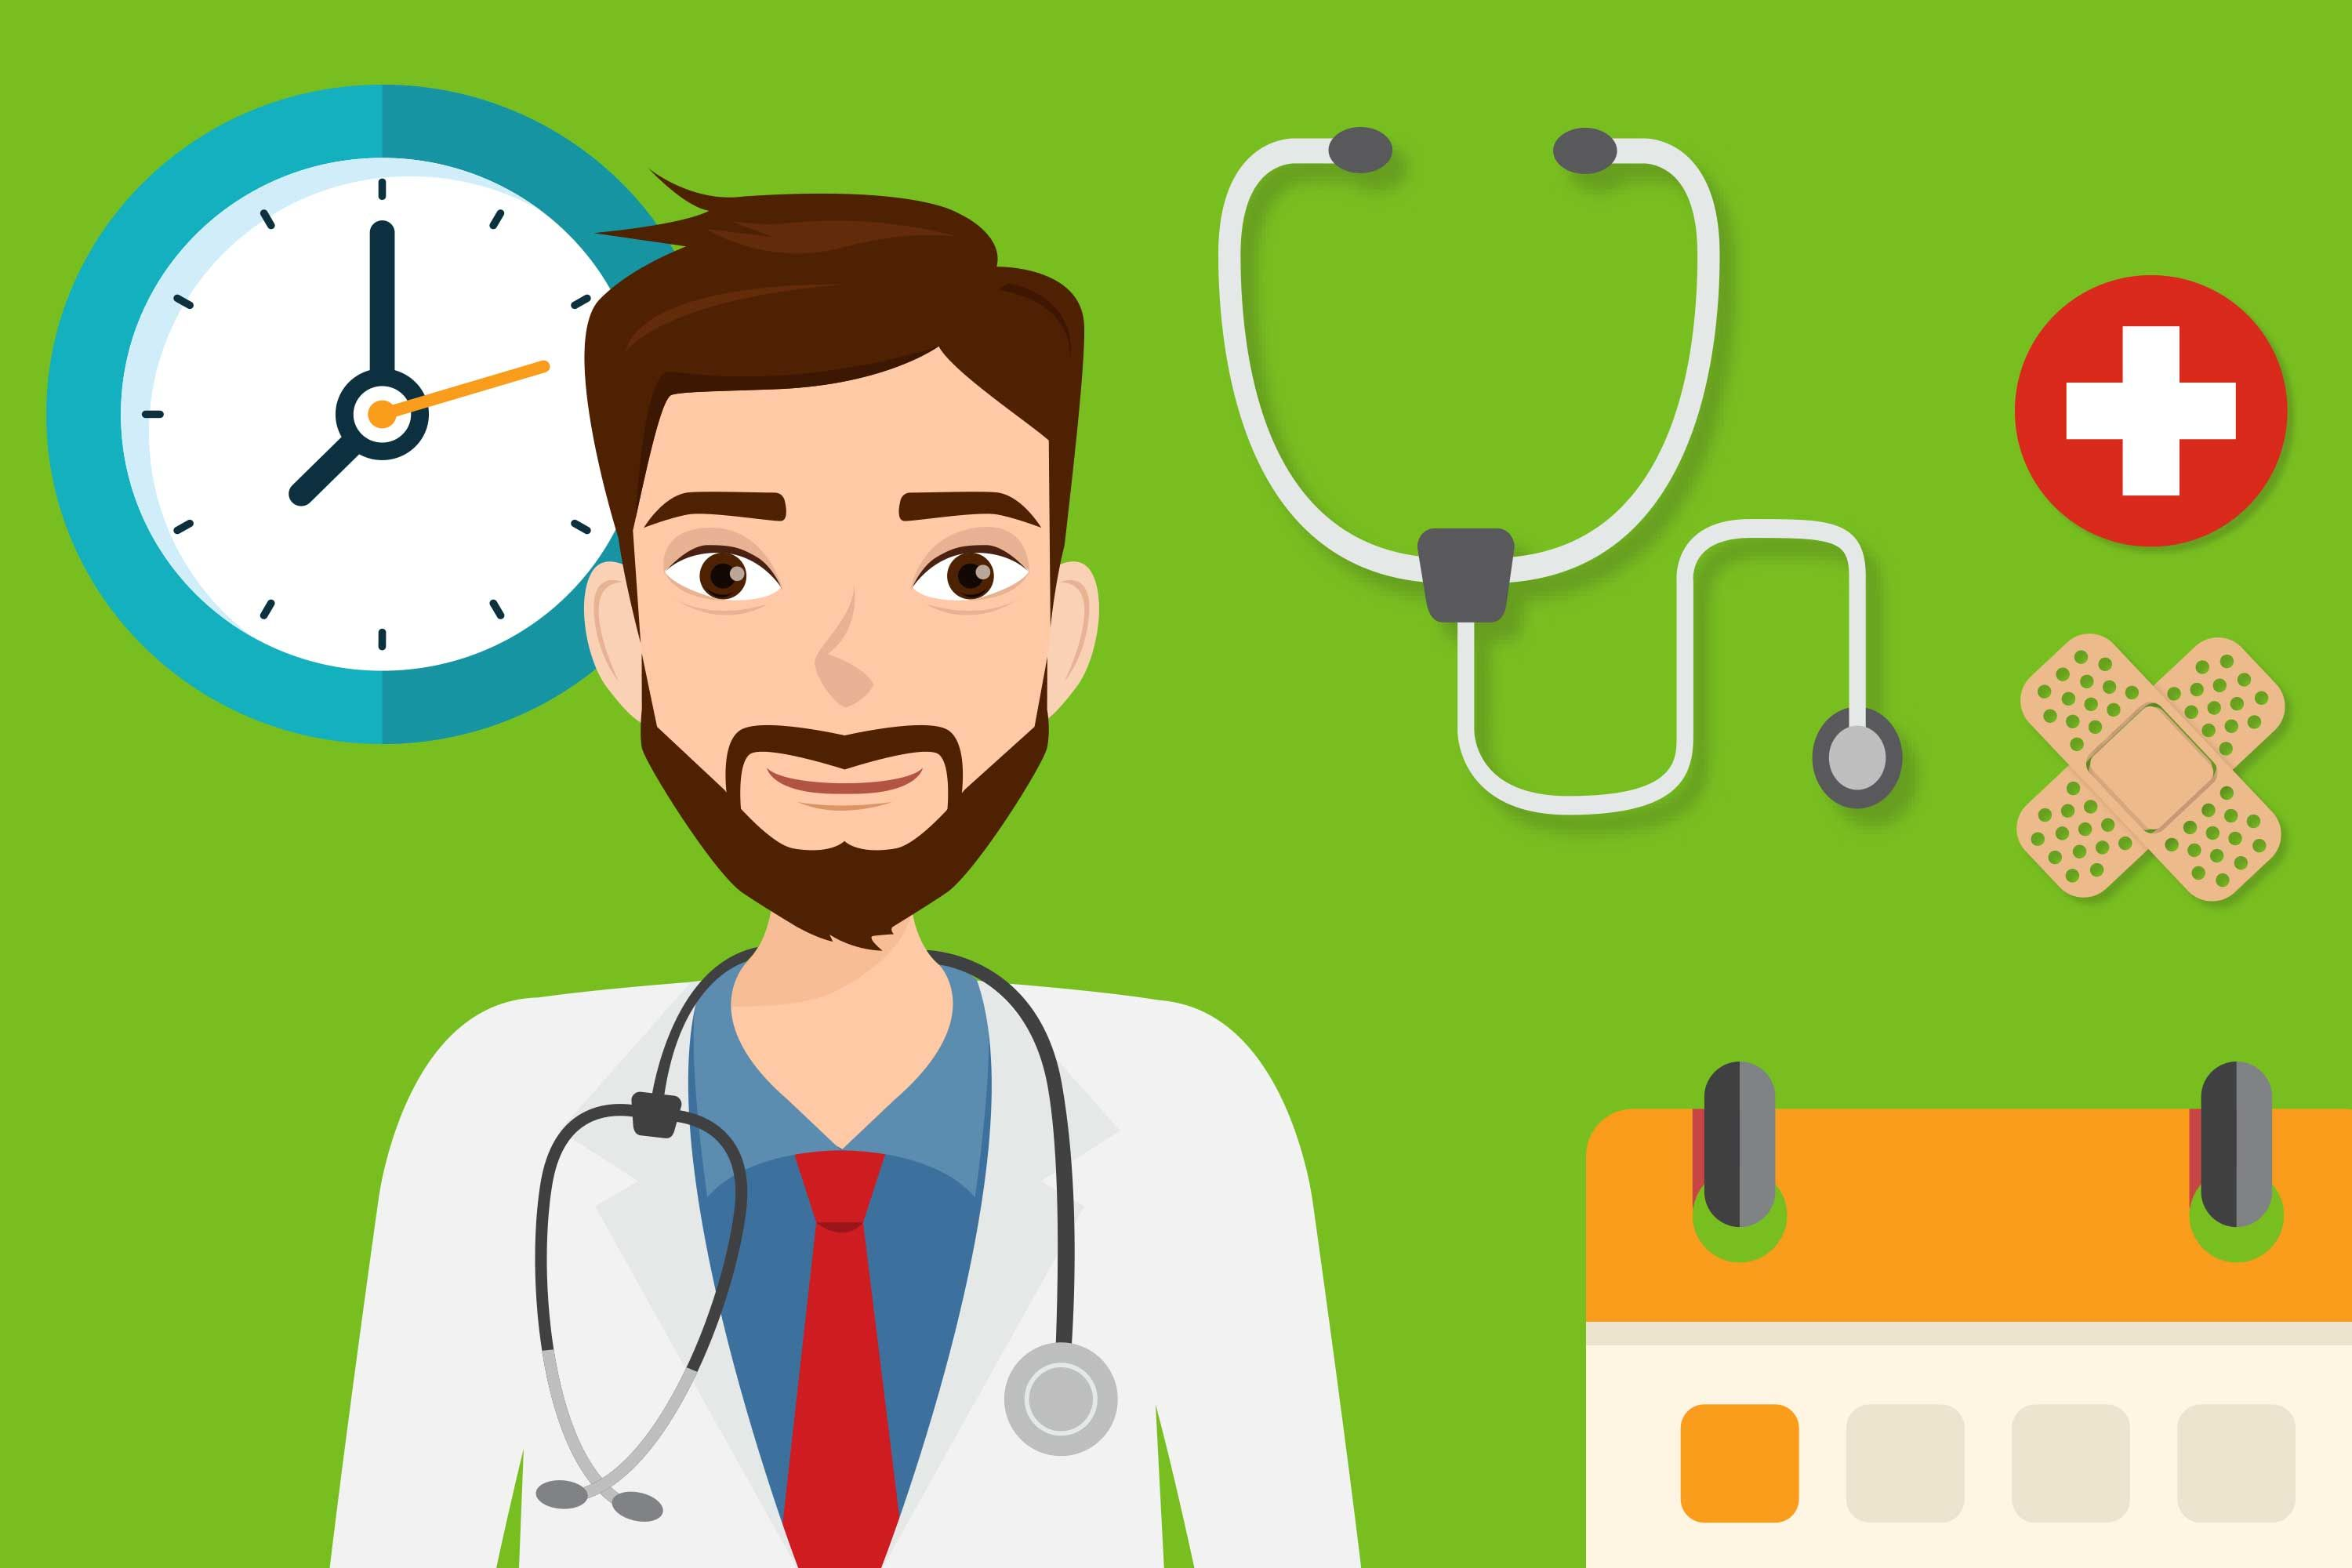 Urgent care, emergency room or doctor's office